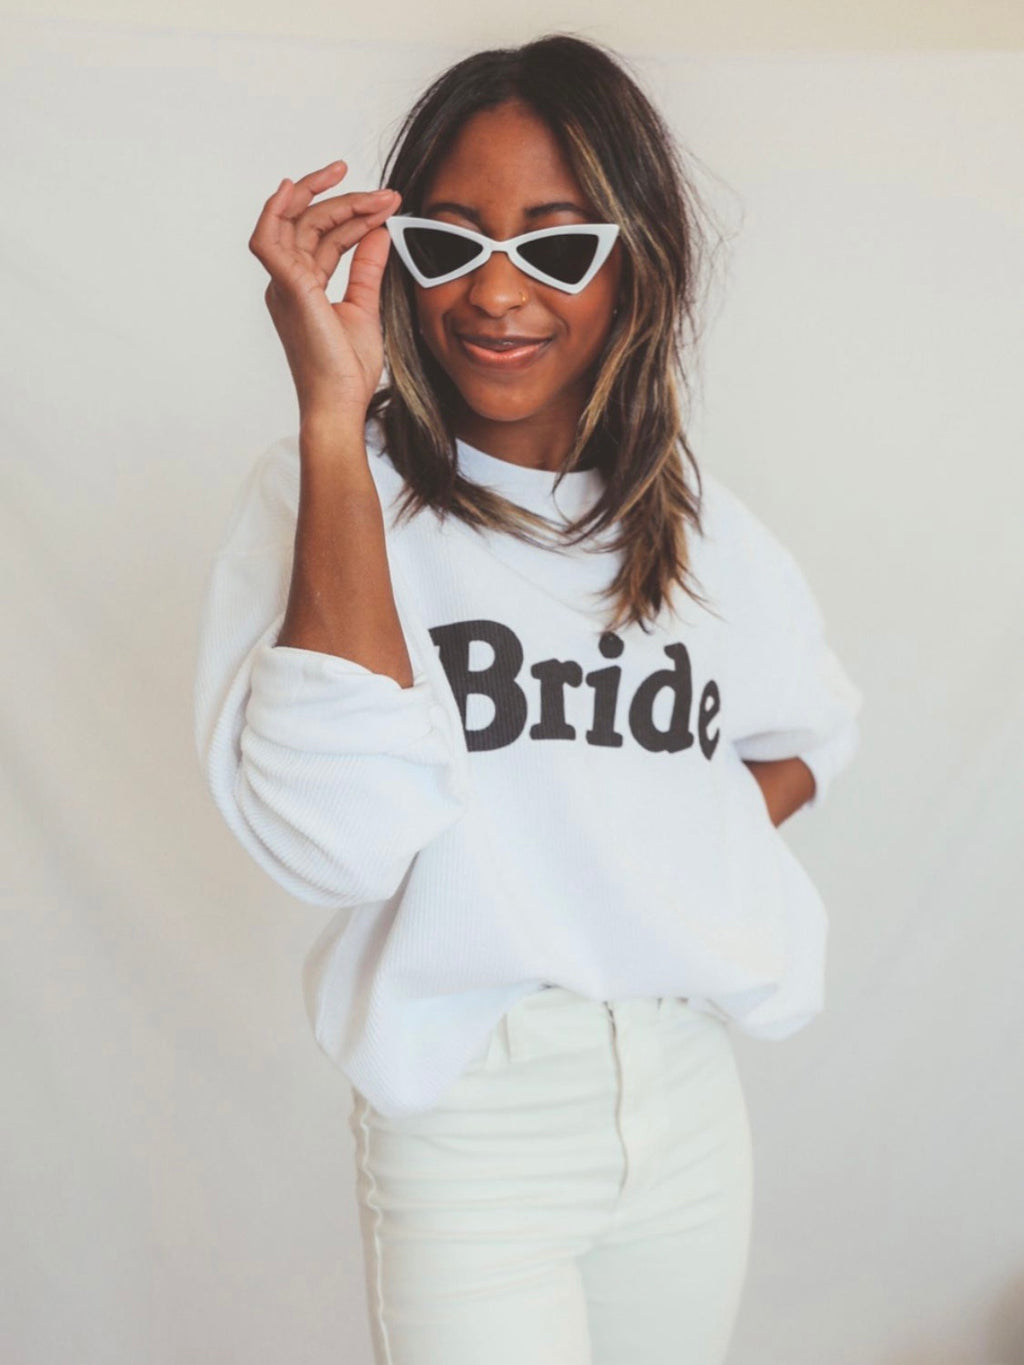 Bride Corded Sweatshirt